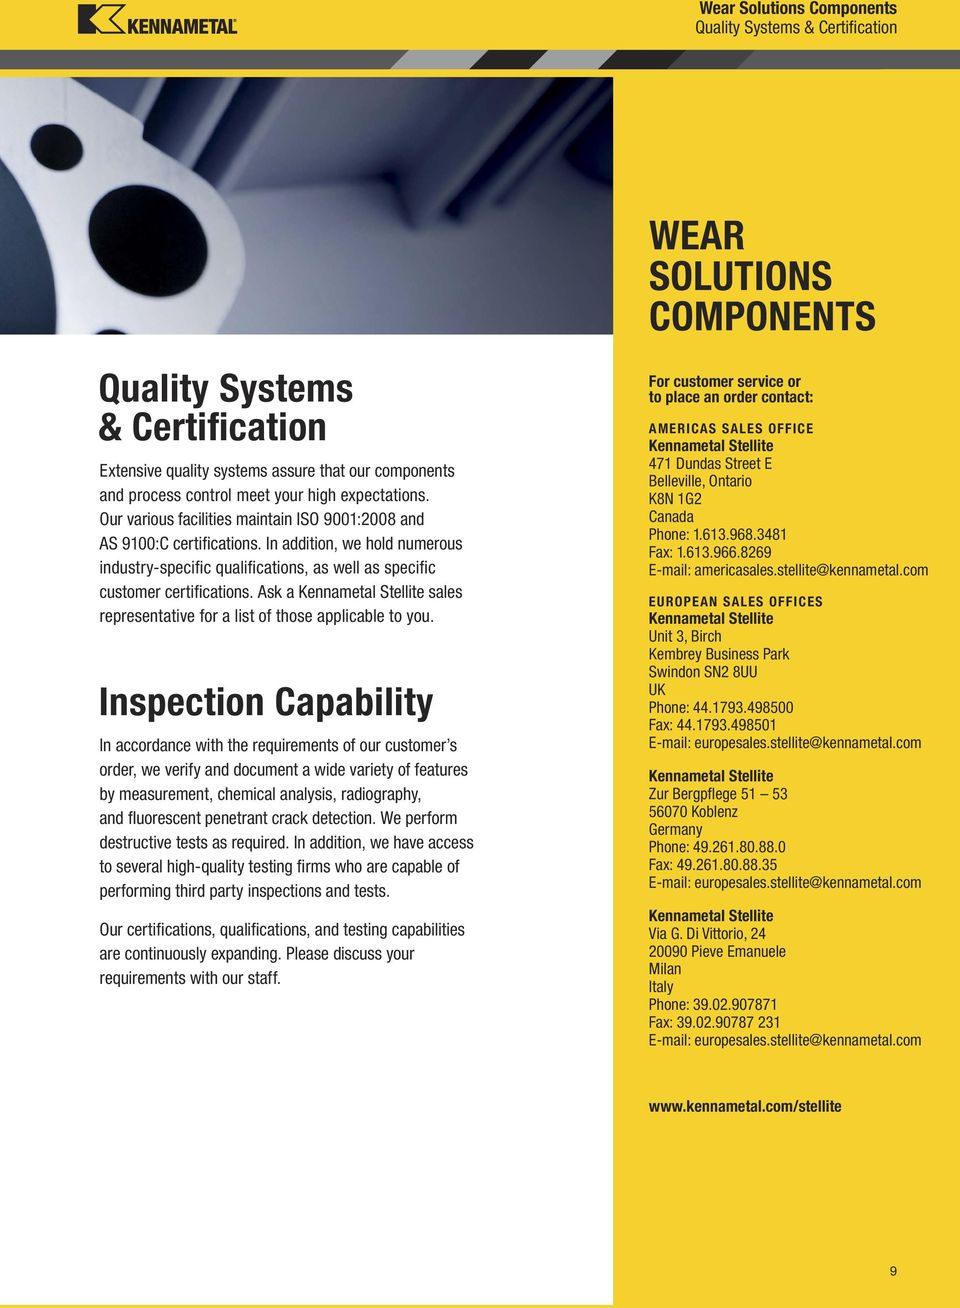 Wear Solutions Components Subheader Pdf Kembrey Wiring Systems Ask A Kennametal Stellite Sales Representative For List Of Those Applicable To You